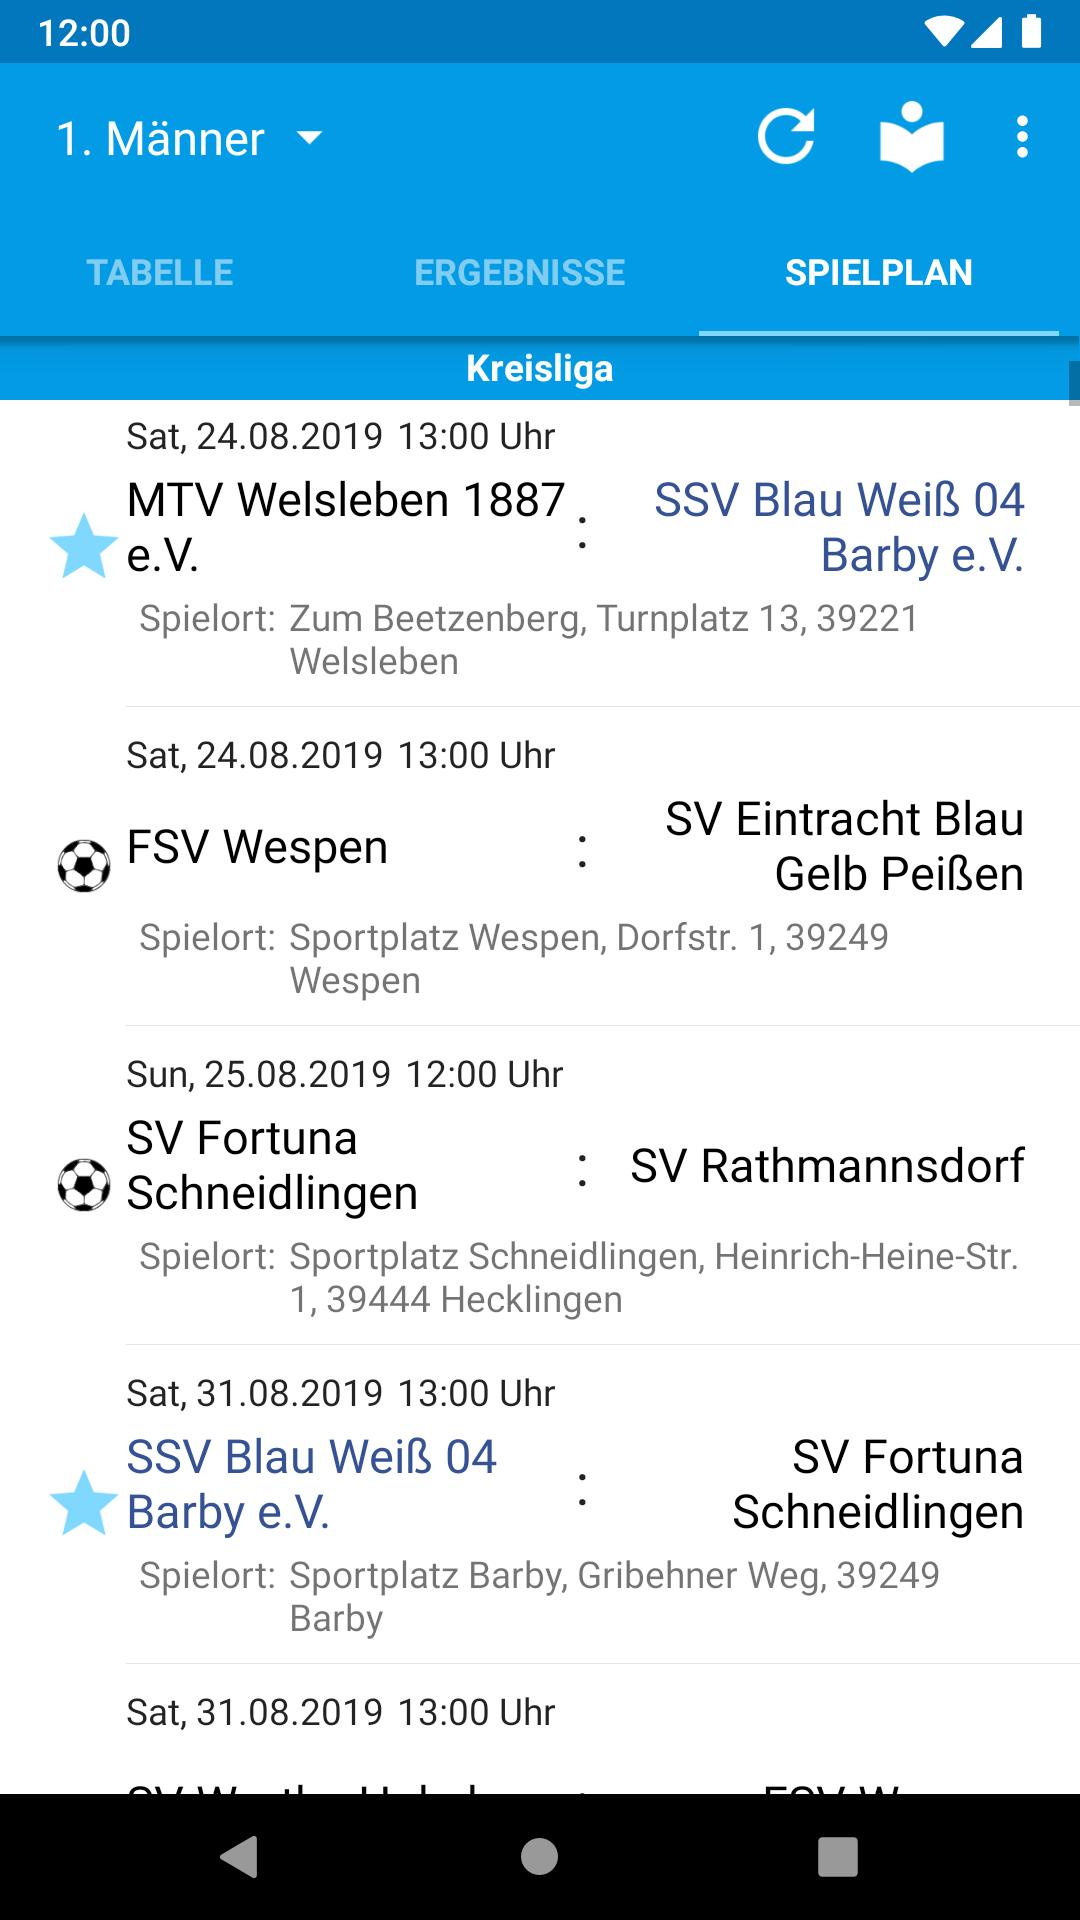 Ssv Blau Weiss 04 Barby Fussball For Android Apk Download